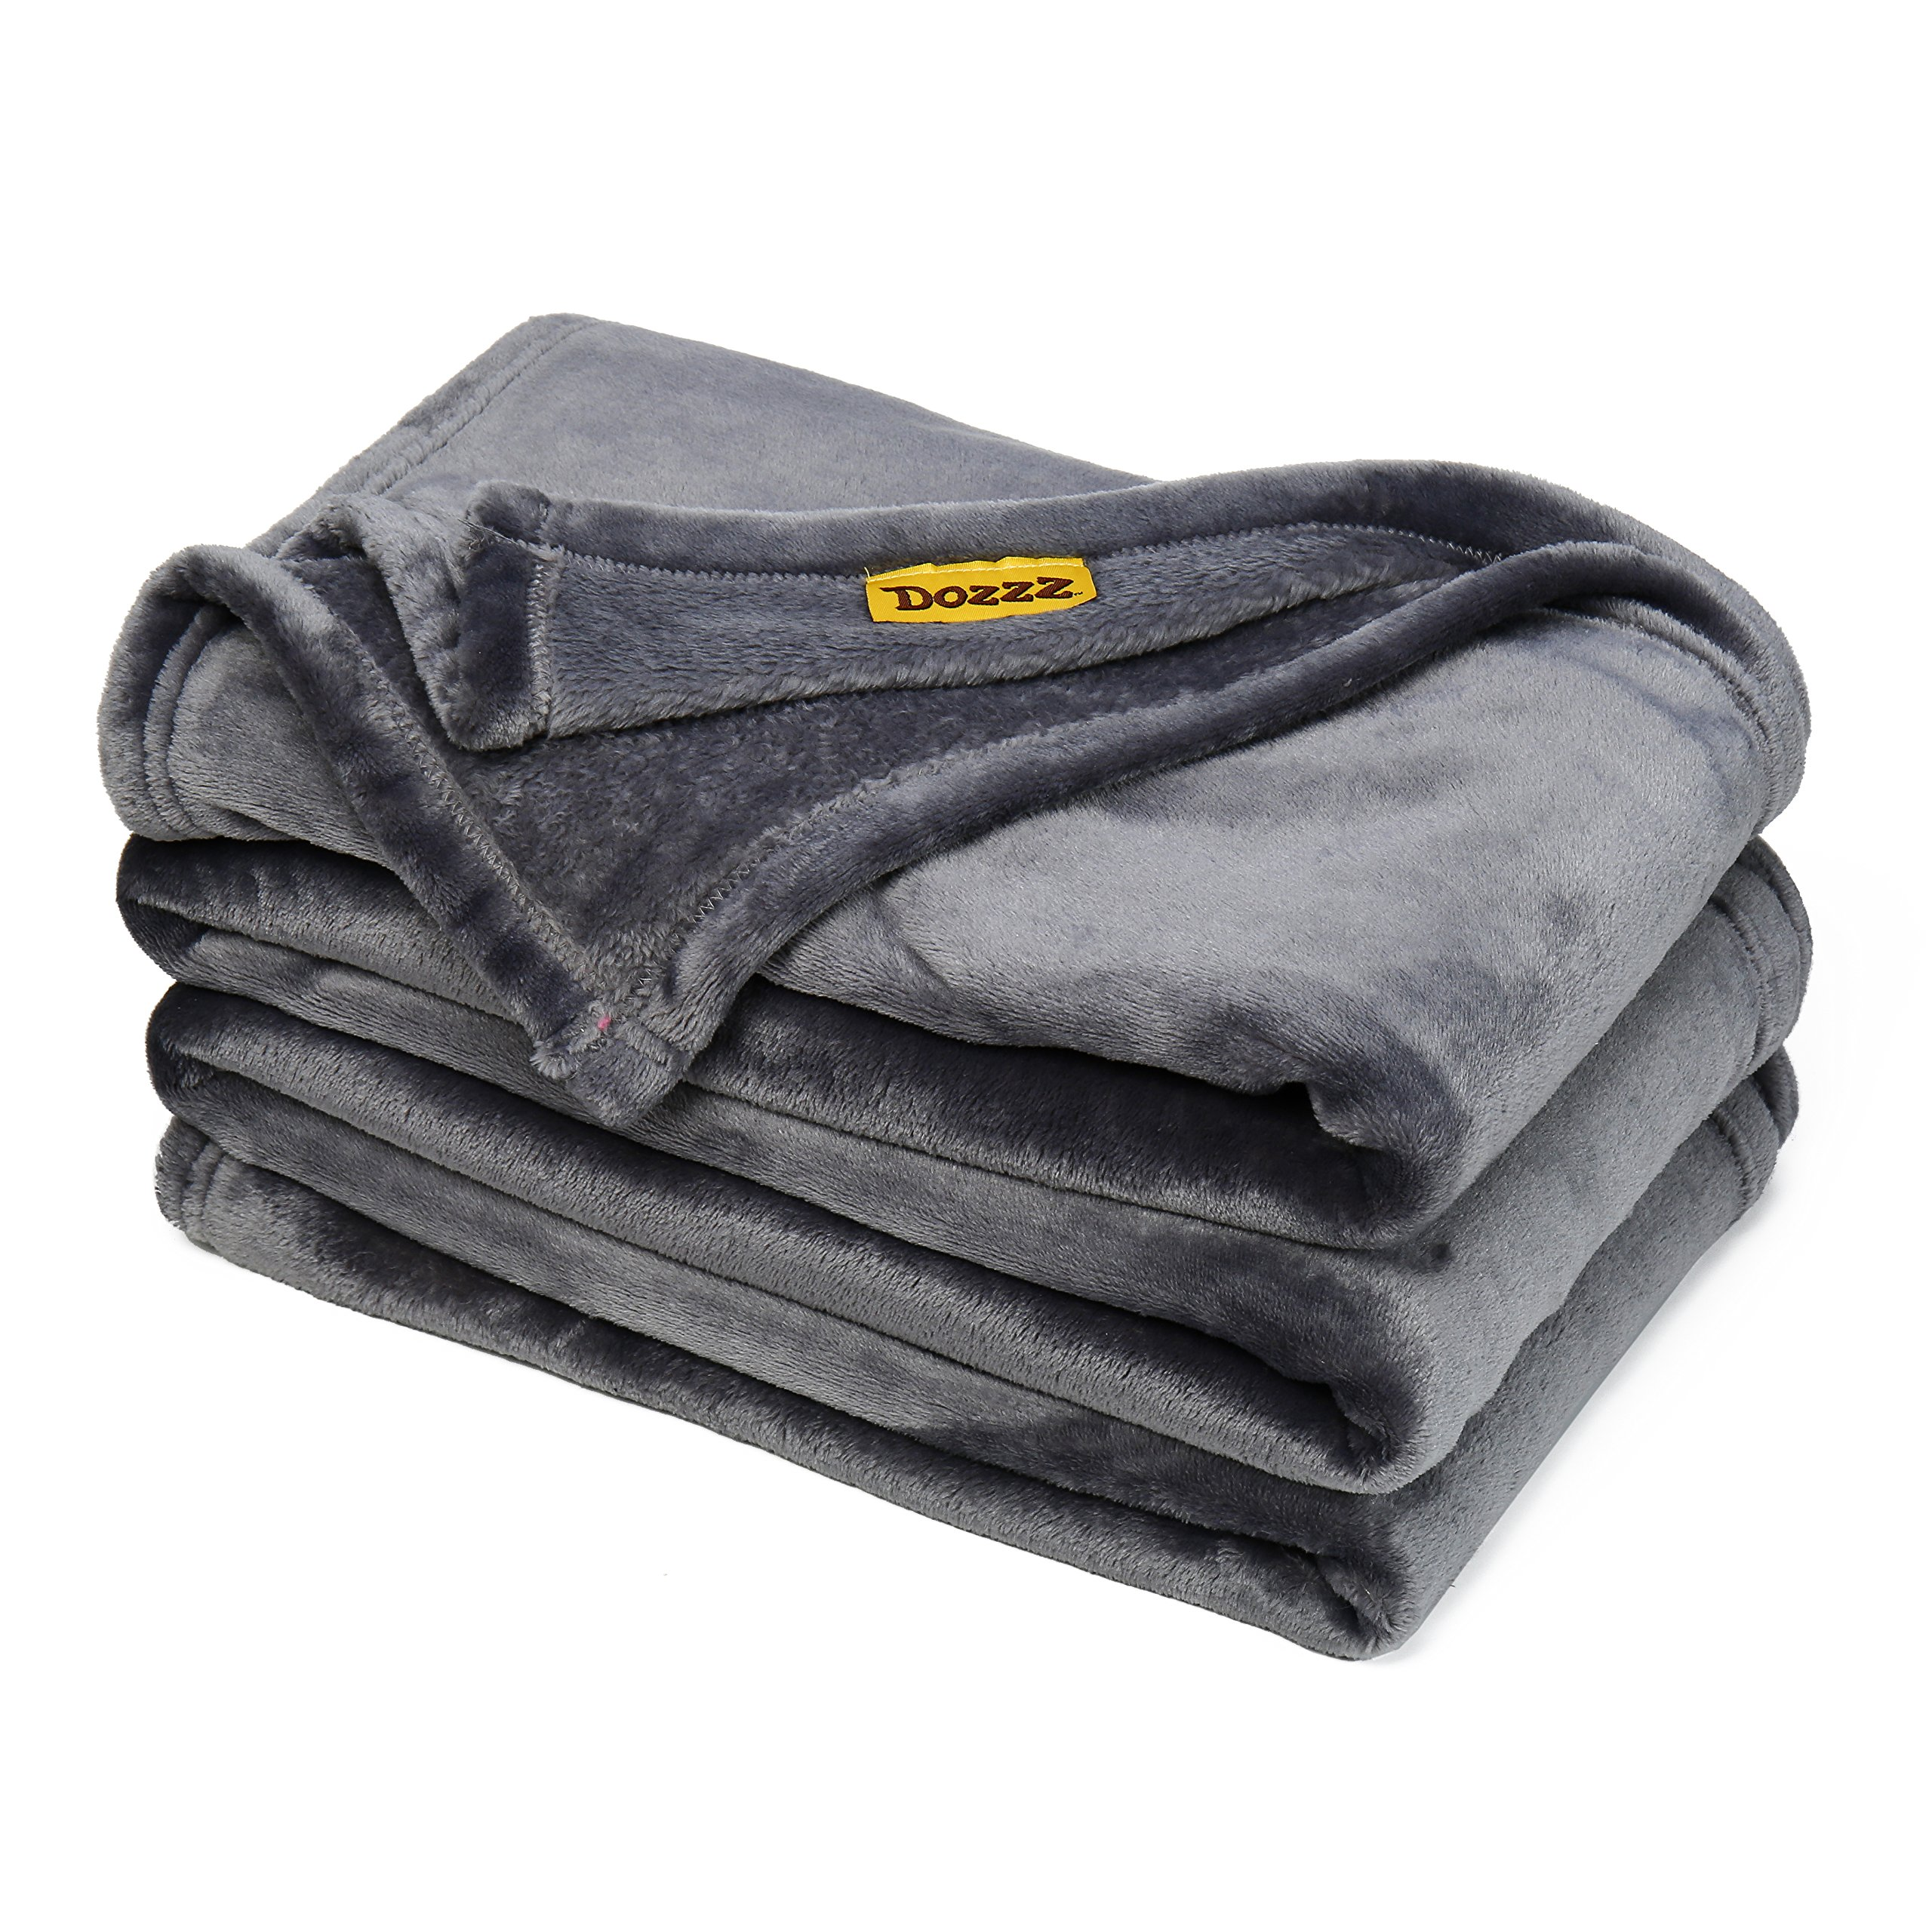 DOZZZ Oversize Flannel Throw Blanket with Cozy Plush Soft Cover for Sofa Chair and Bed Furniture Gift Grey